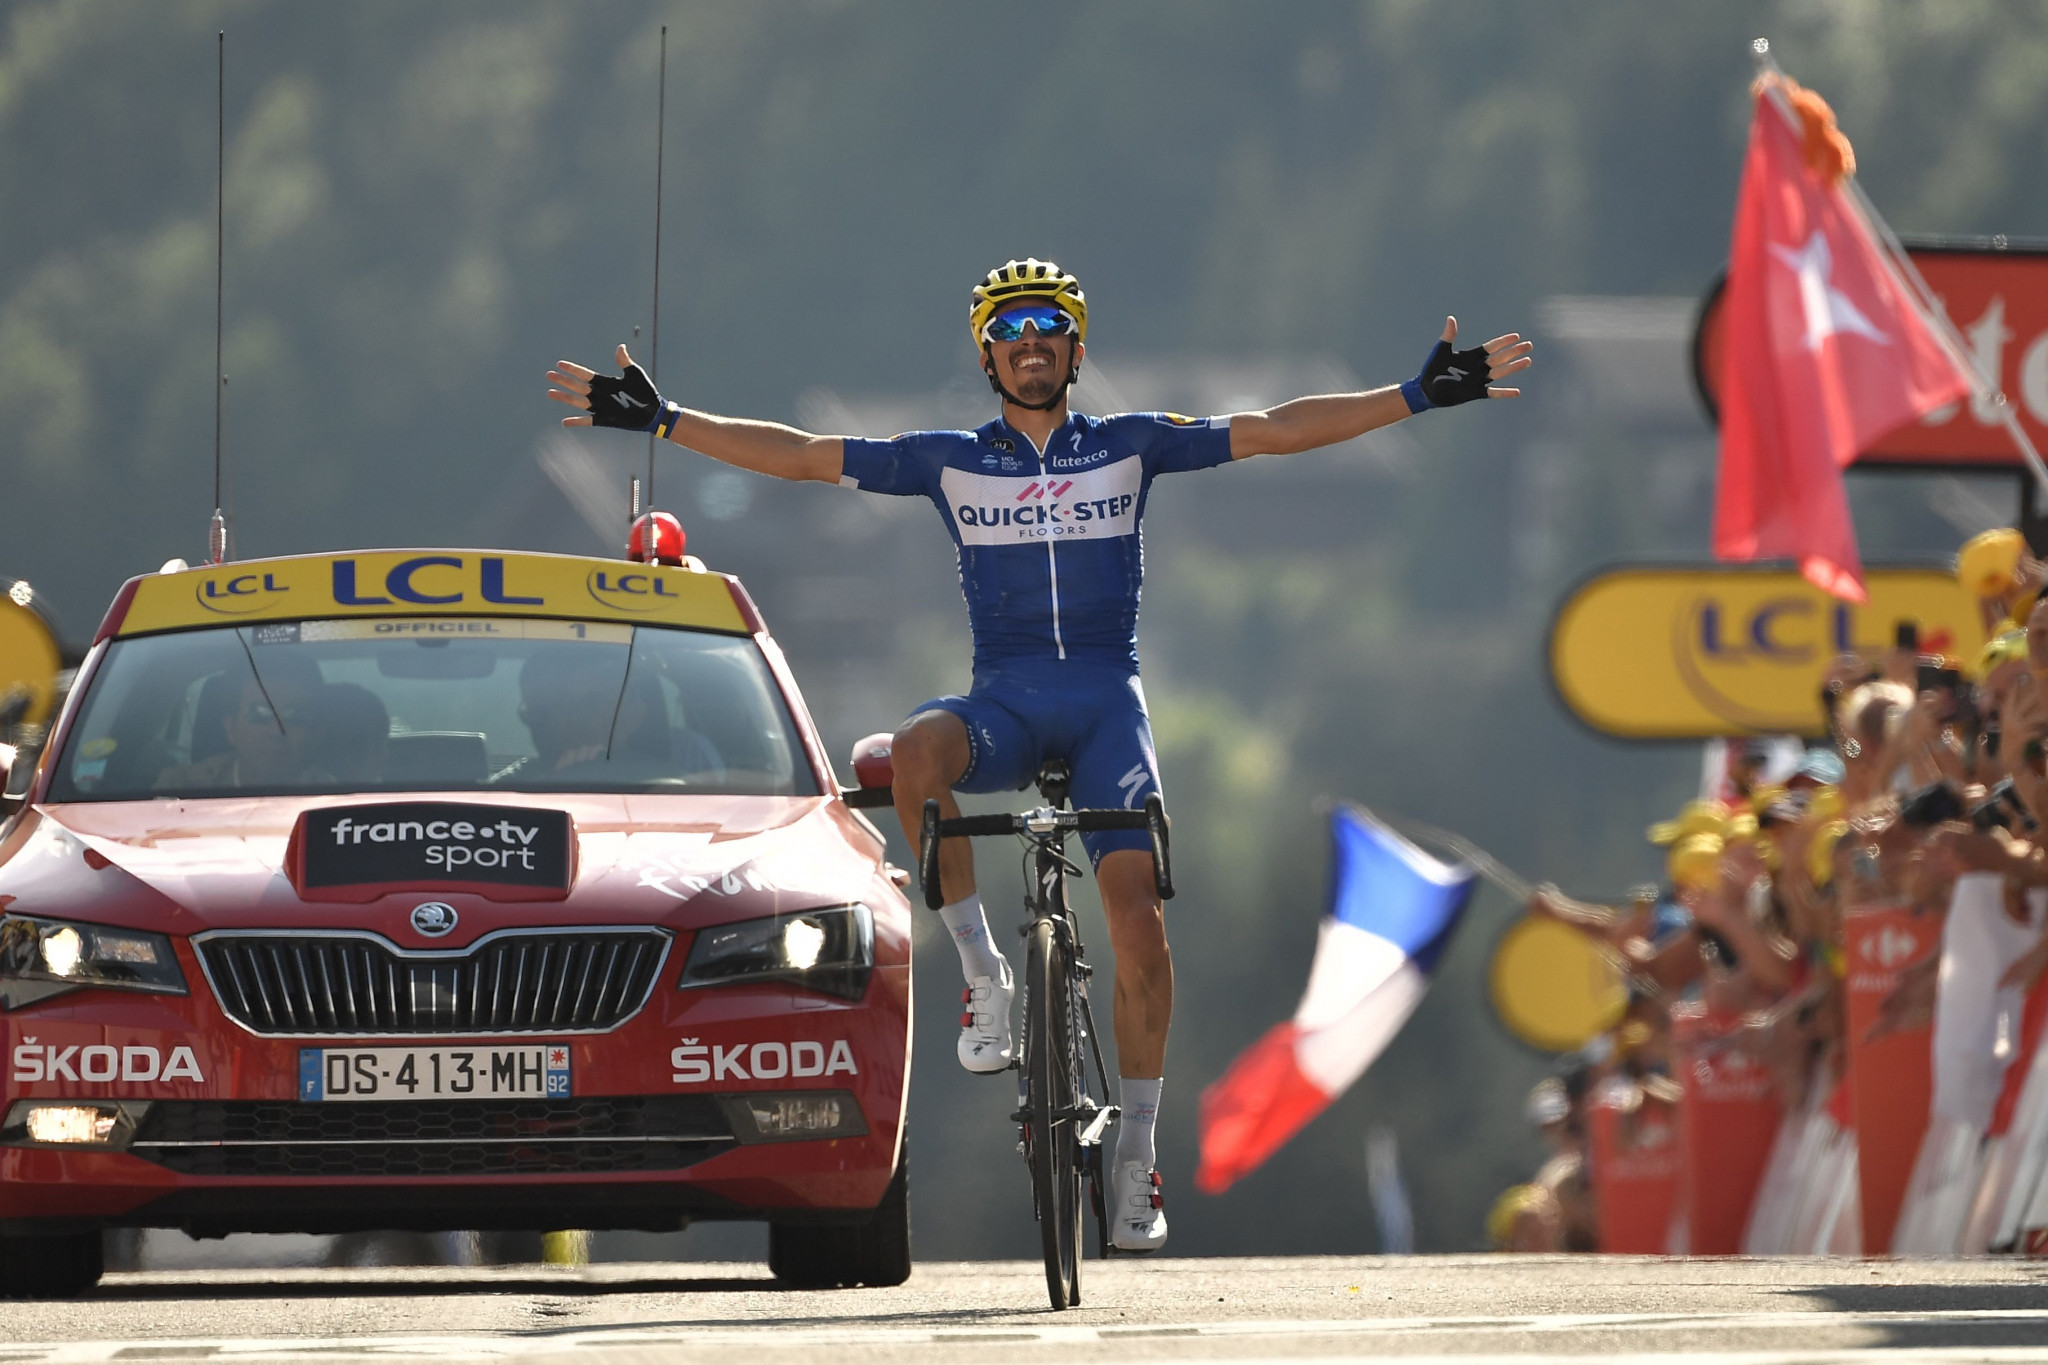 Alaphilippe solos to maiden Tour de France stage win as van Avermaet extends race lead